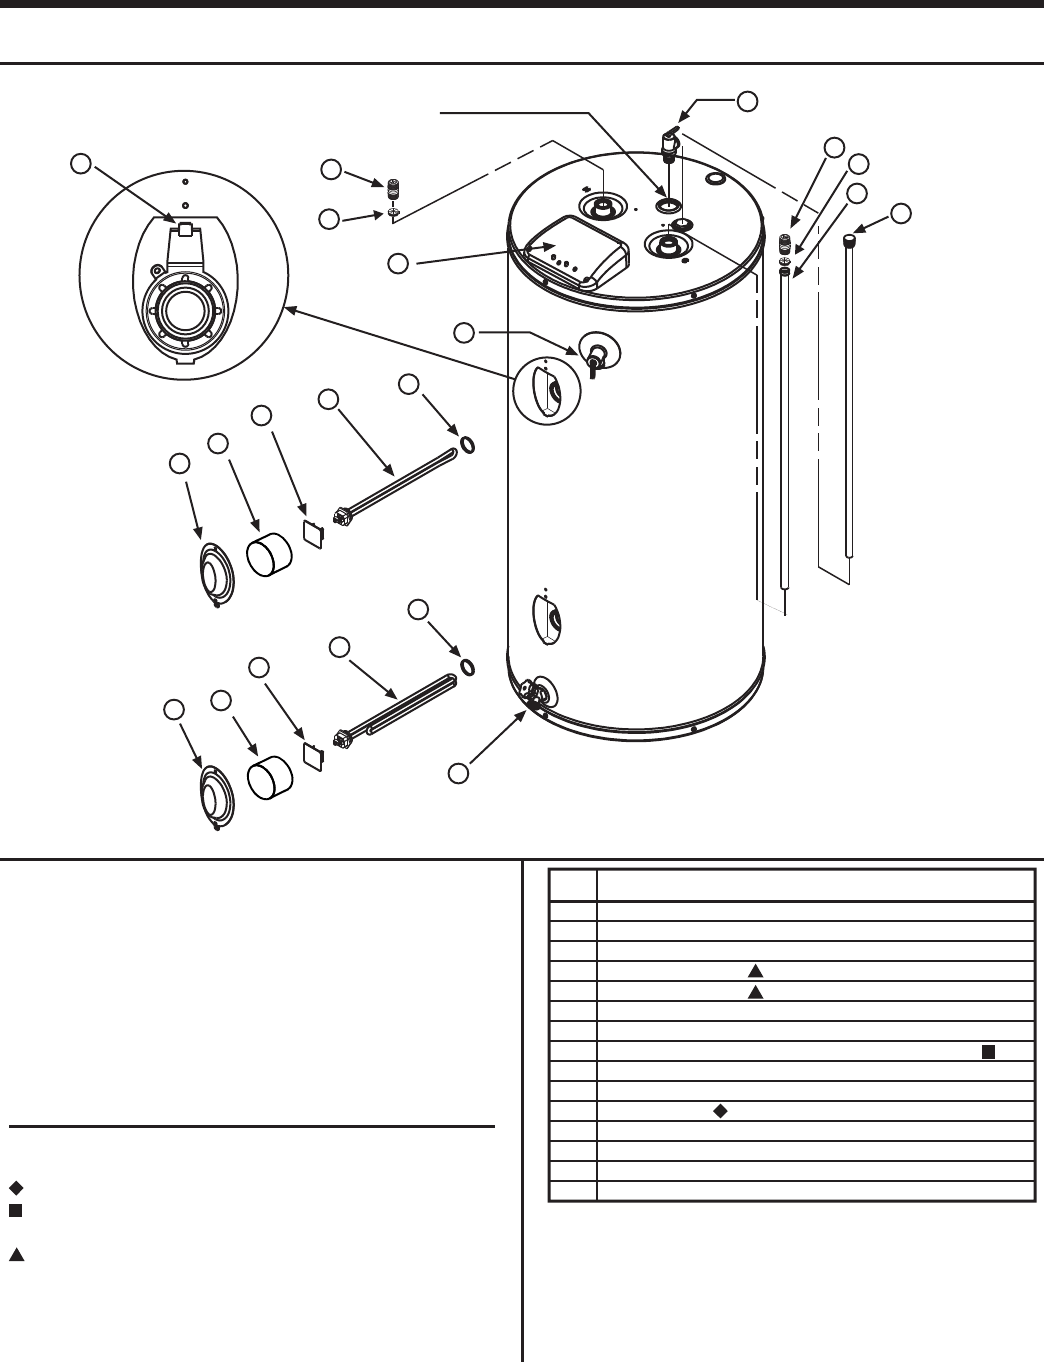 Whirlpool Water Heater Wiring Diagram from pdfasset.owneriq.net